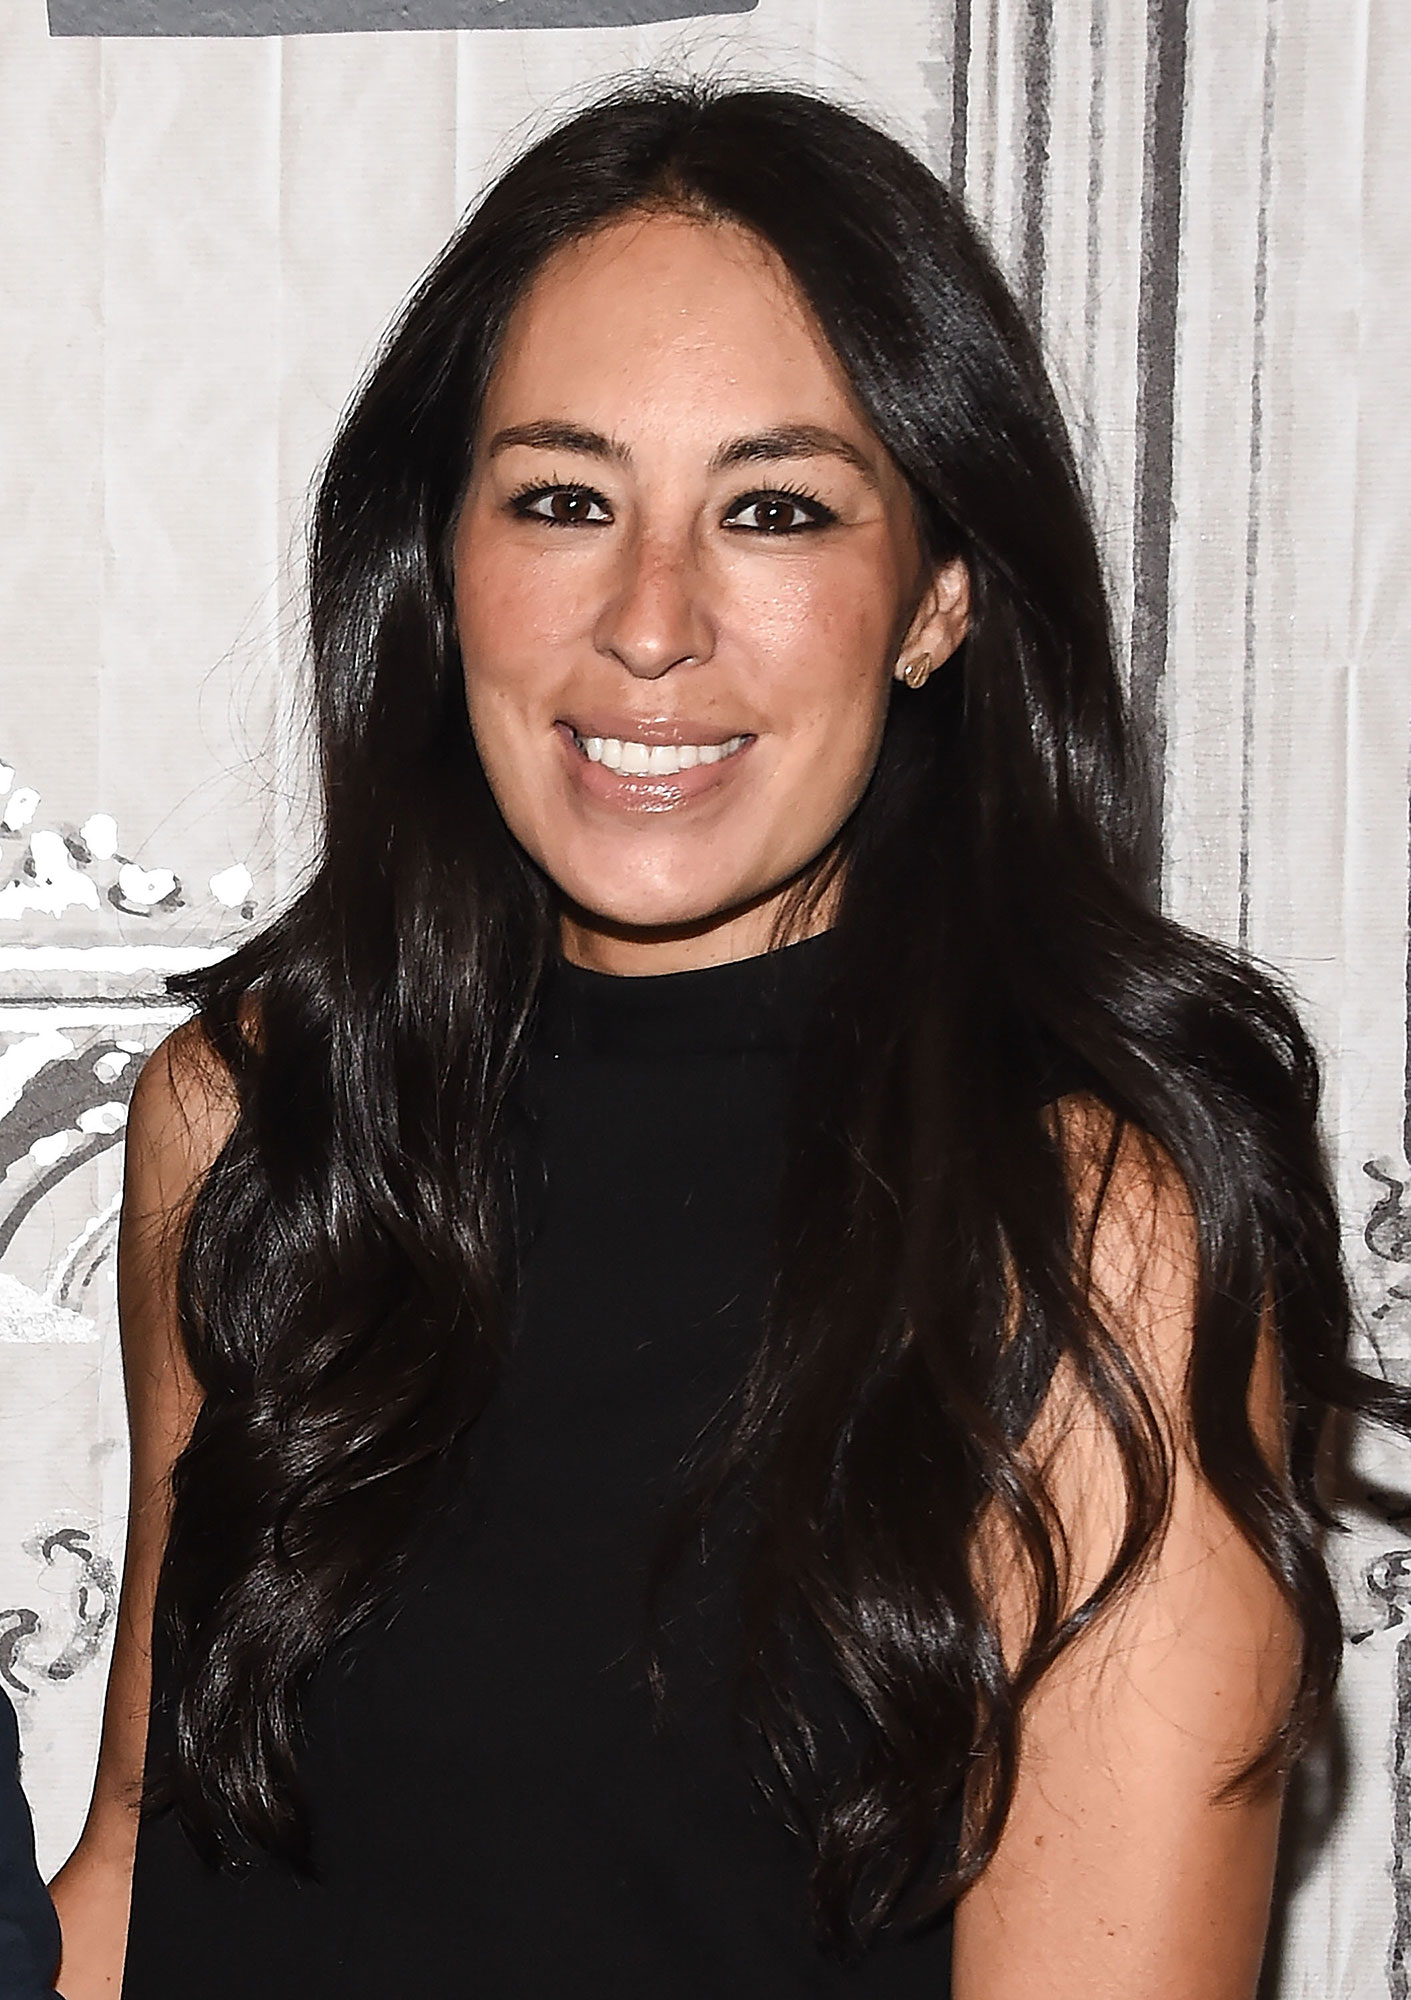 Farmhouse Overflow! Joanna Gaines Reveals What's Hiding in Her Messy Attic